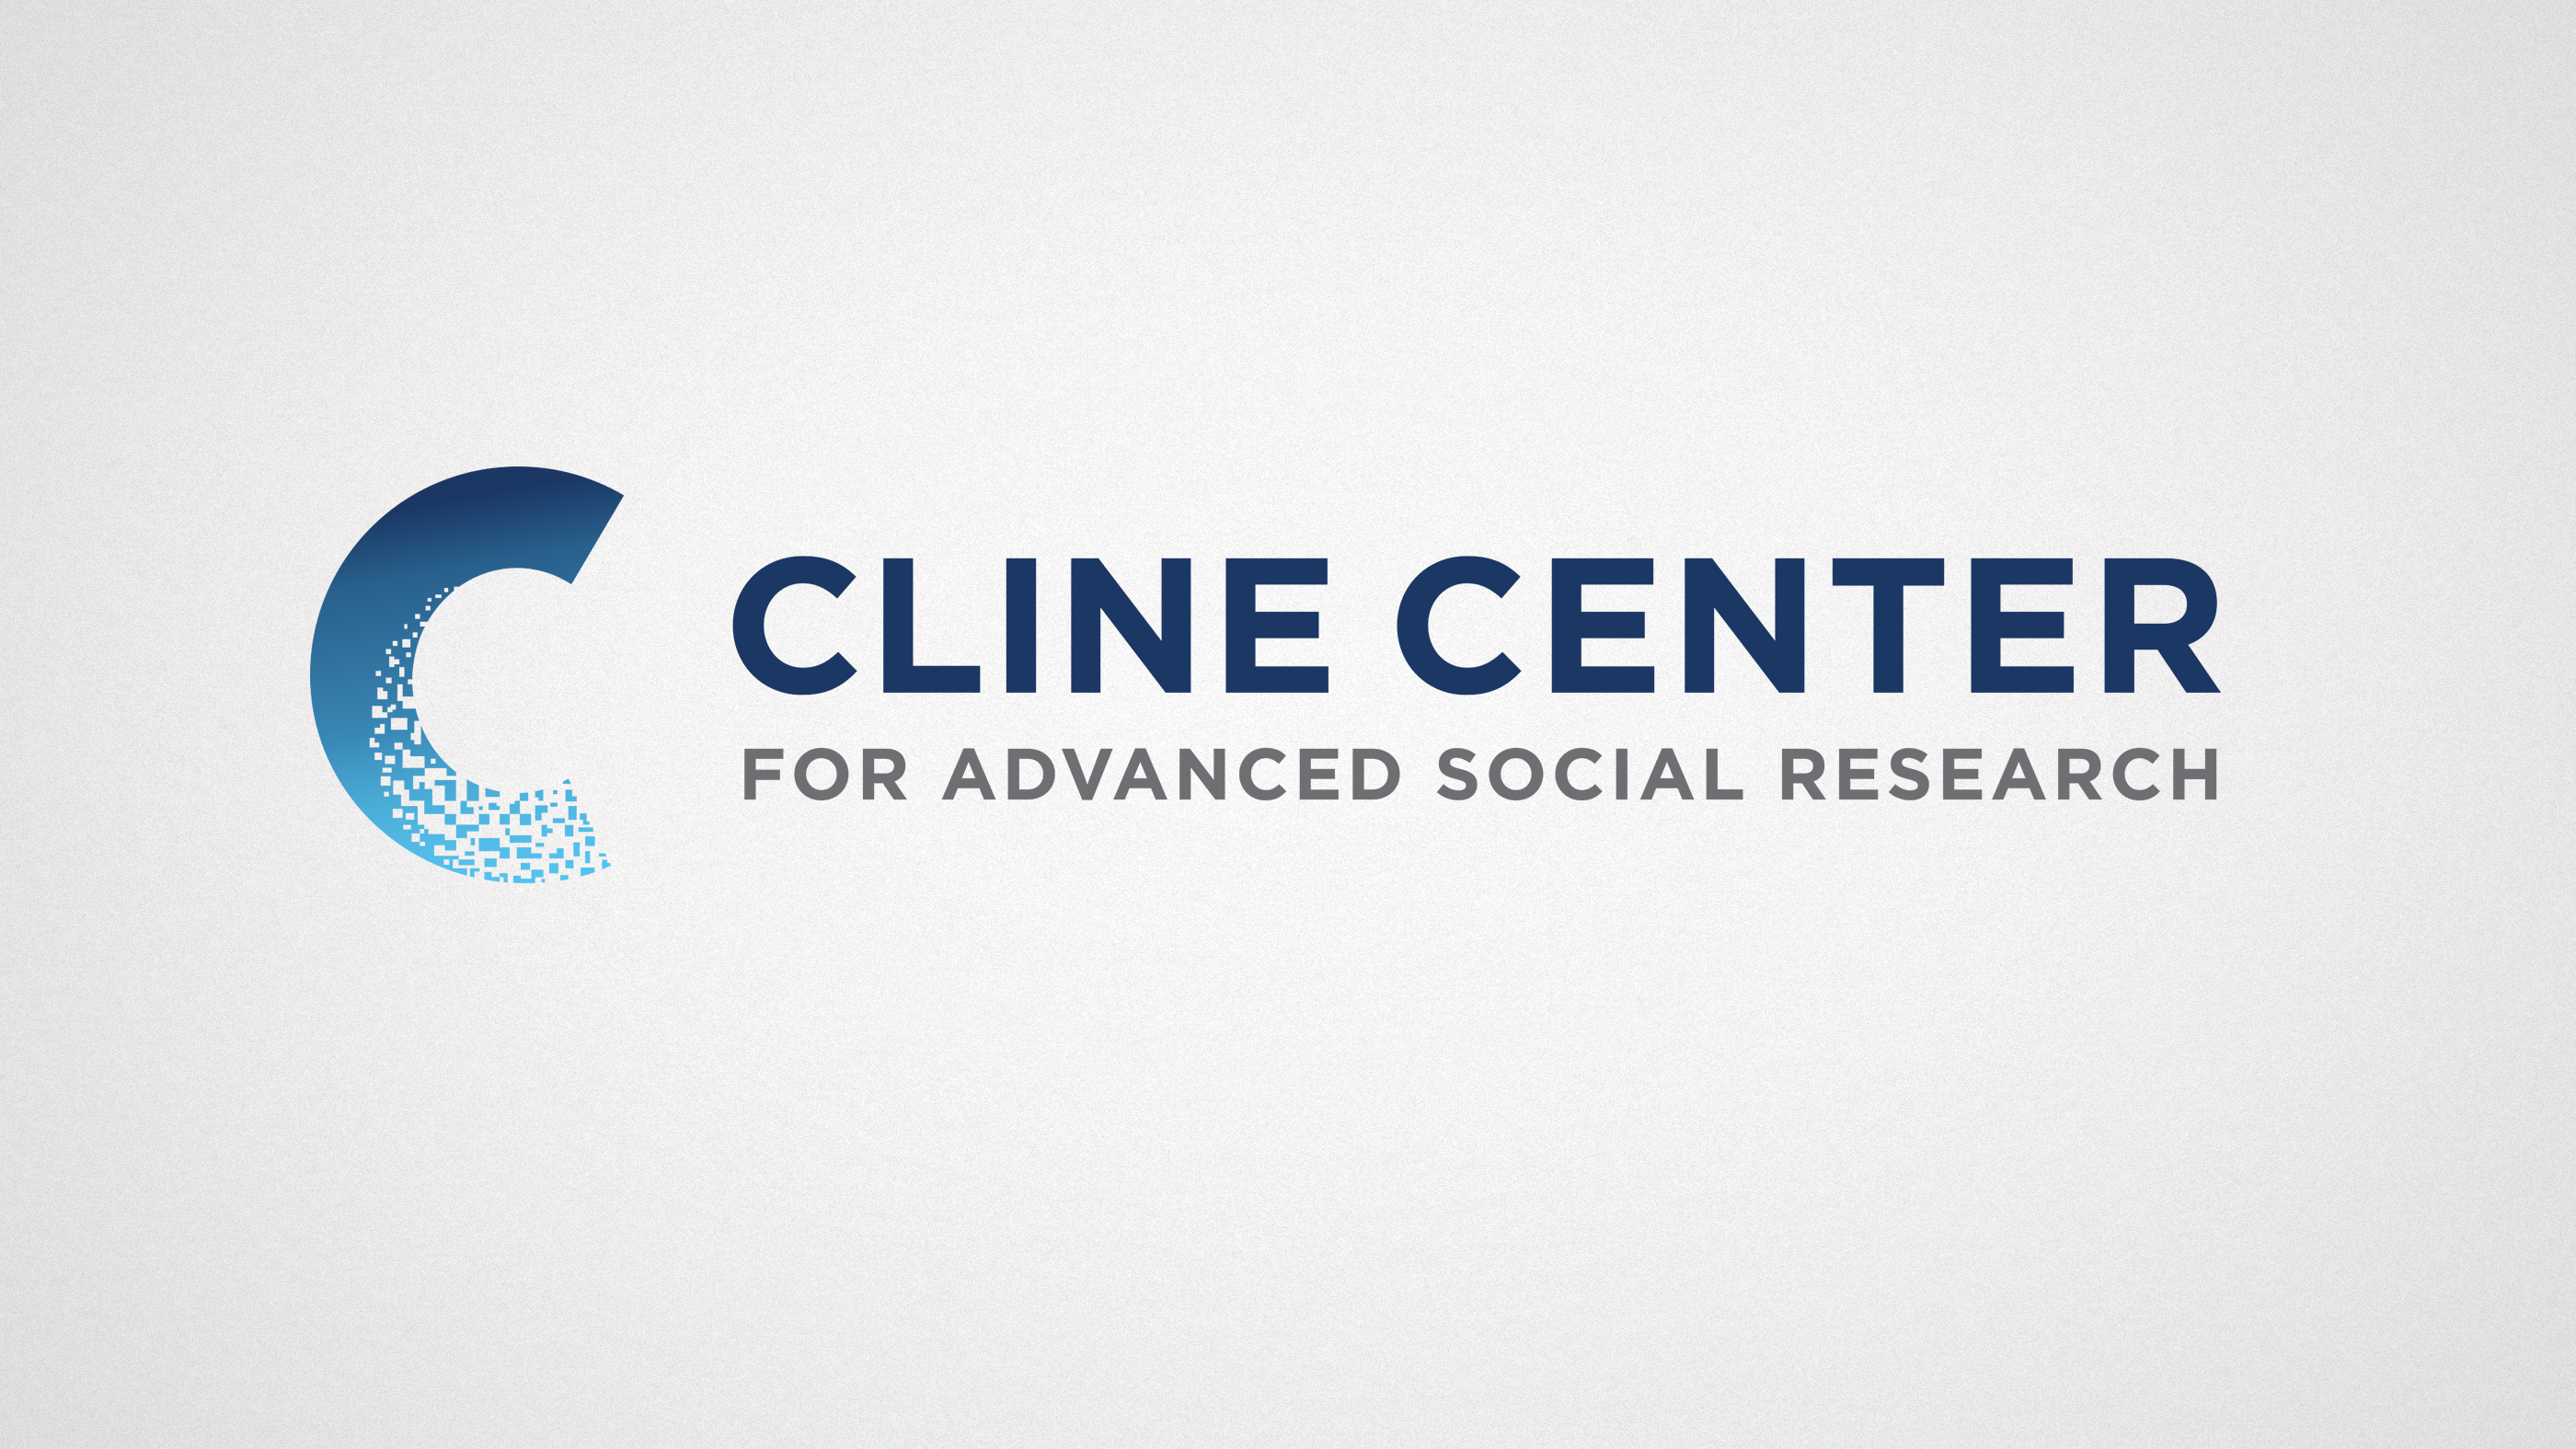 Cline Center logo